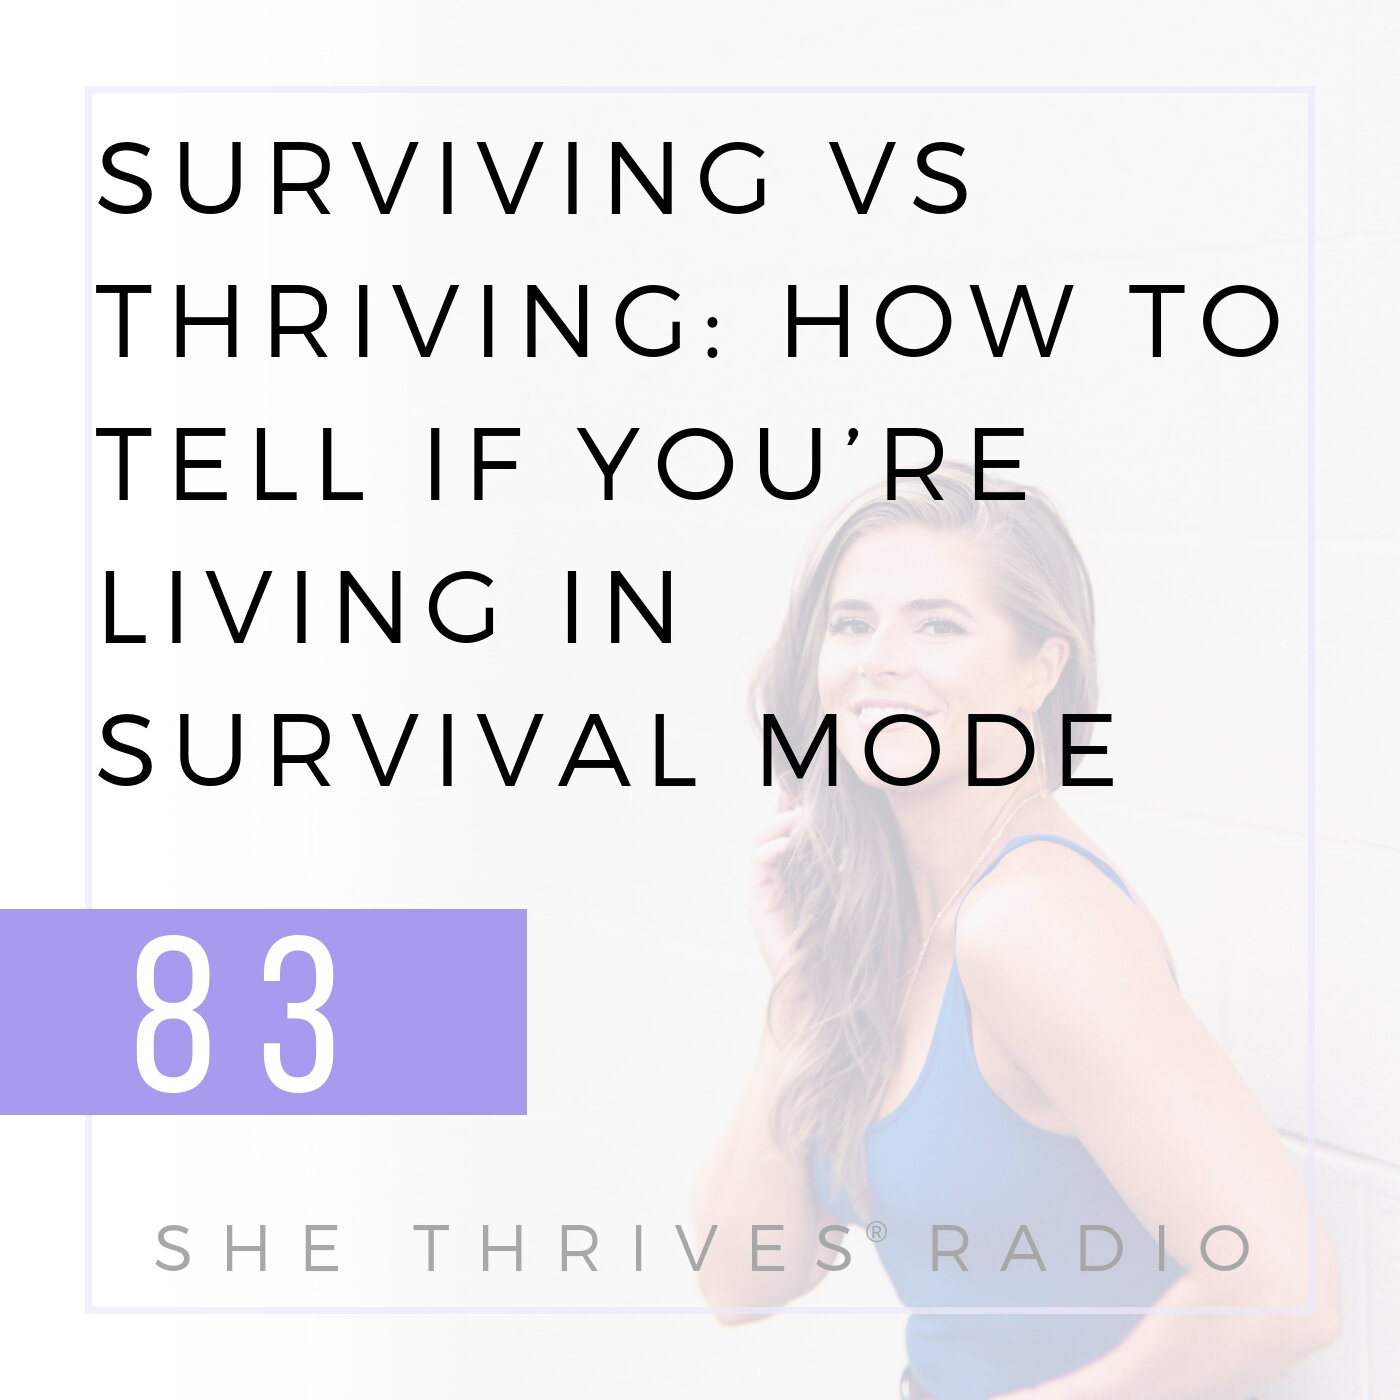 83 | Surviving vs Thriving: How to Tell if You're Living in Survival Mode  | SHE THRIVES RADIO